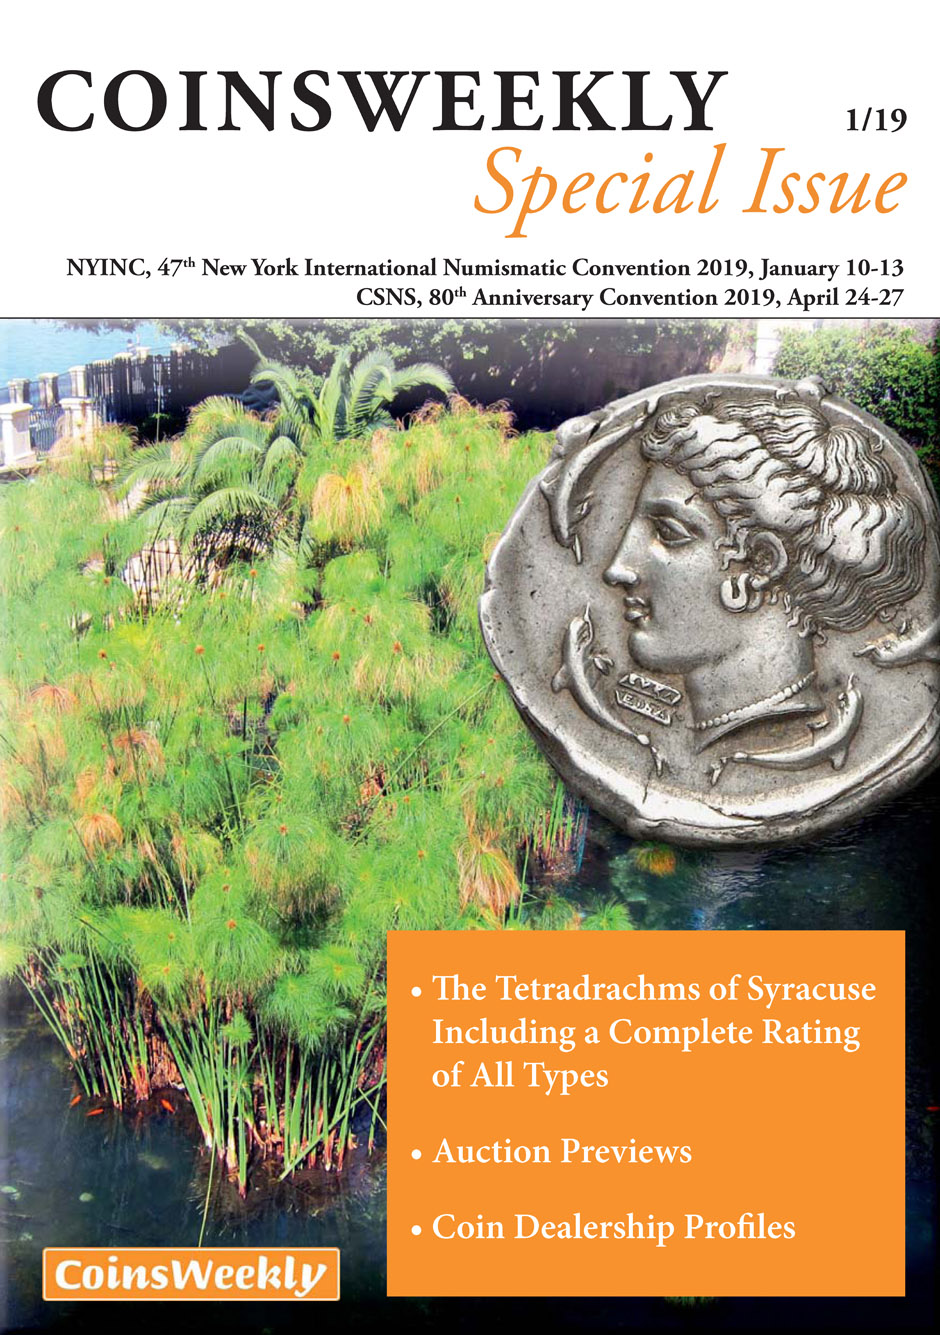 MünzenWoche Spezial, 1/19, Coins Weekly Special NYINC/ CSNS, The Tetradrachms of Syracus including a complete rating of all types